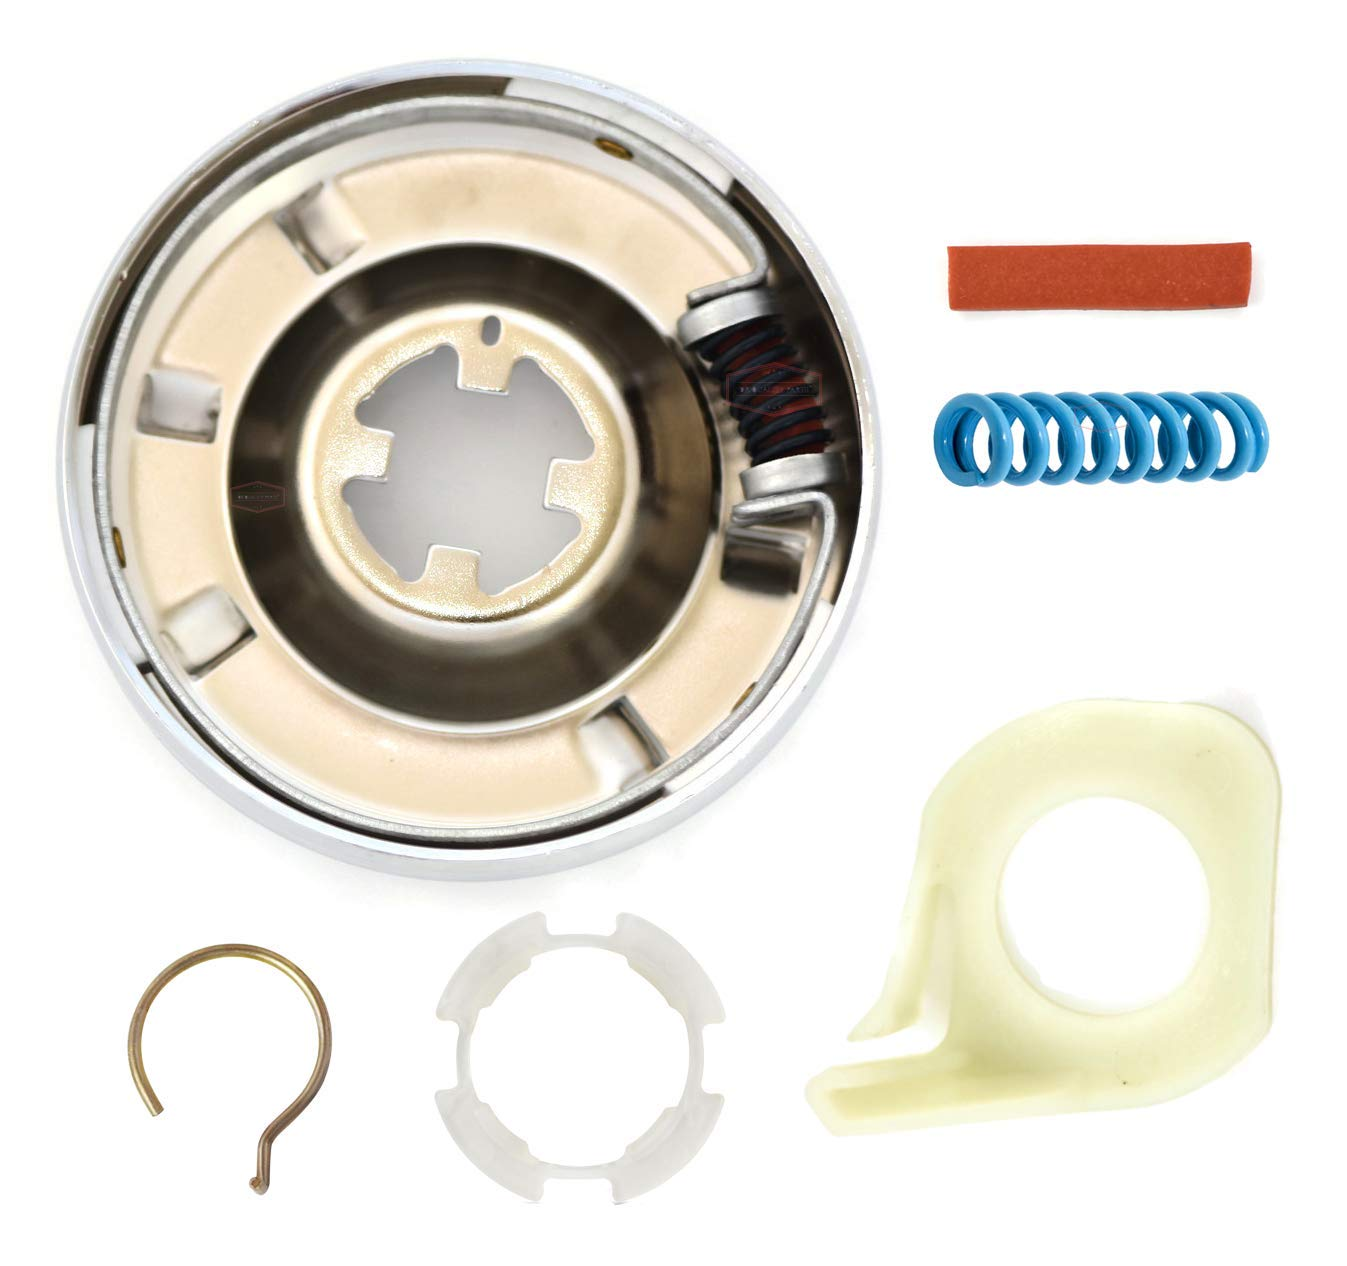 285785 Washer Clutch Kit Replacement by DR Quality Parts -Works with Whirlpool & Kenmore - Instruction Included - Replaces 285331, 3351342, 3946794, 3951311, AP3094537 by DR Quality Parts